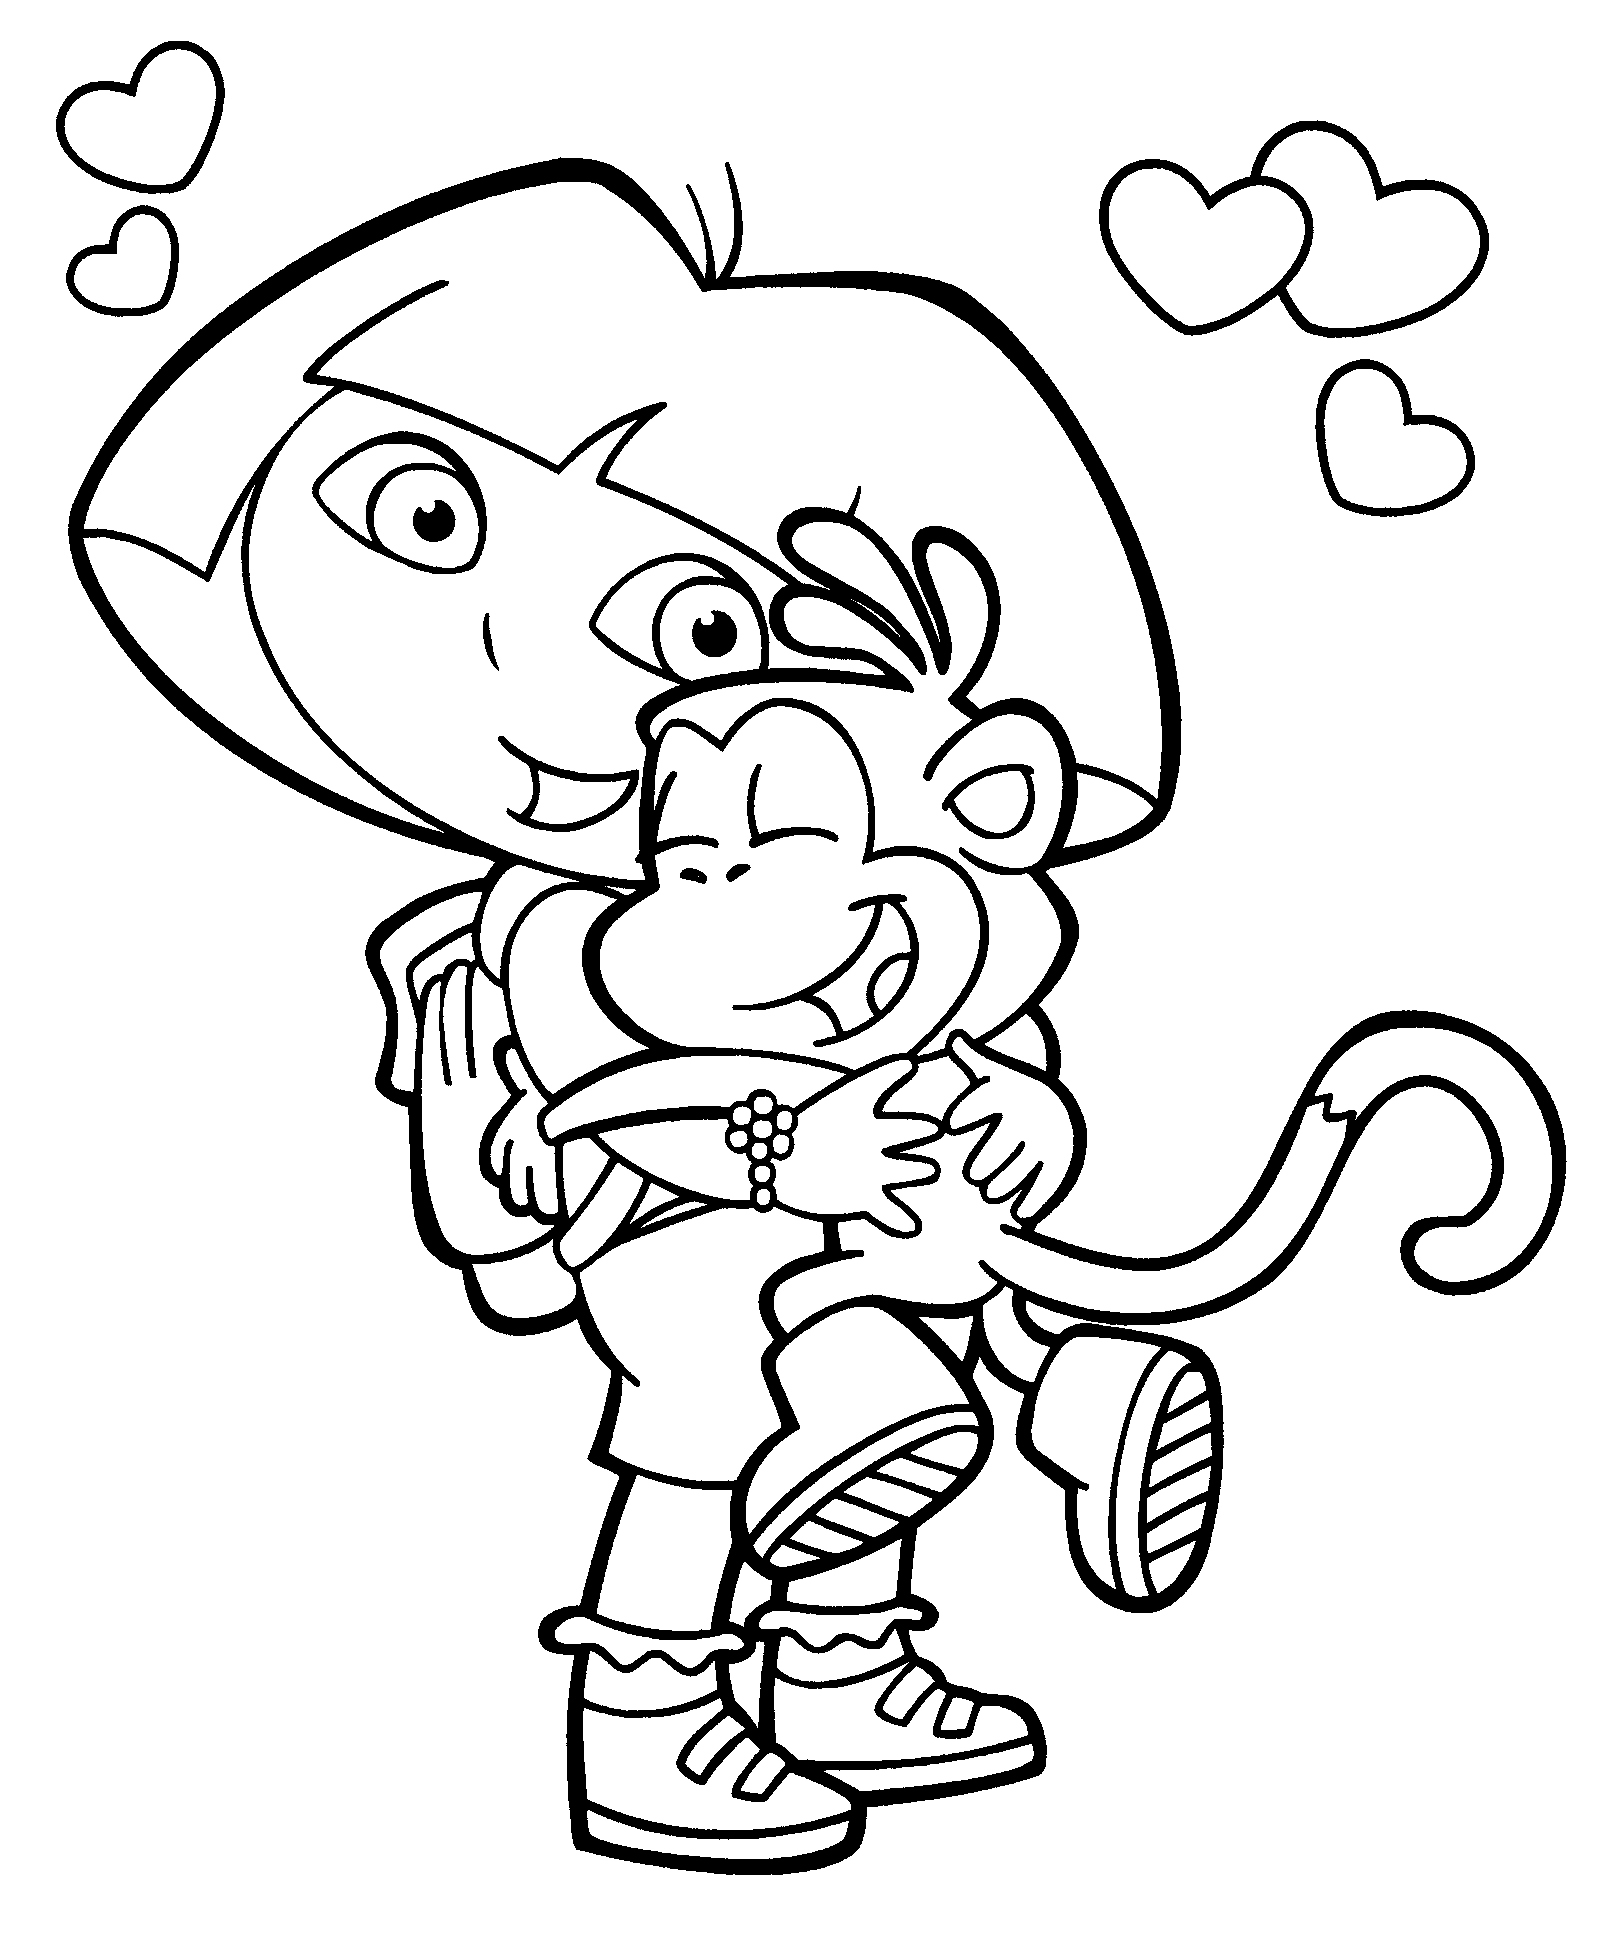 Dora & Boots coloring page | Coloring Pages | Pinterest | Birthdays